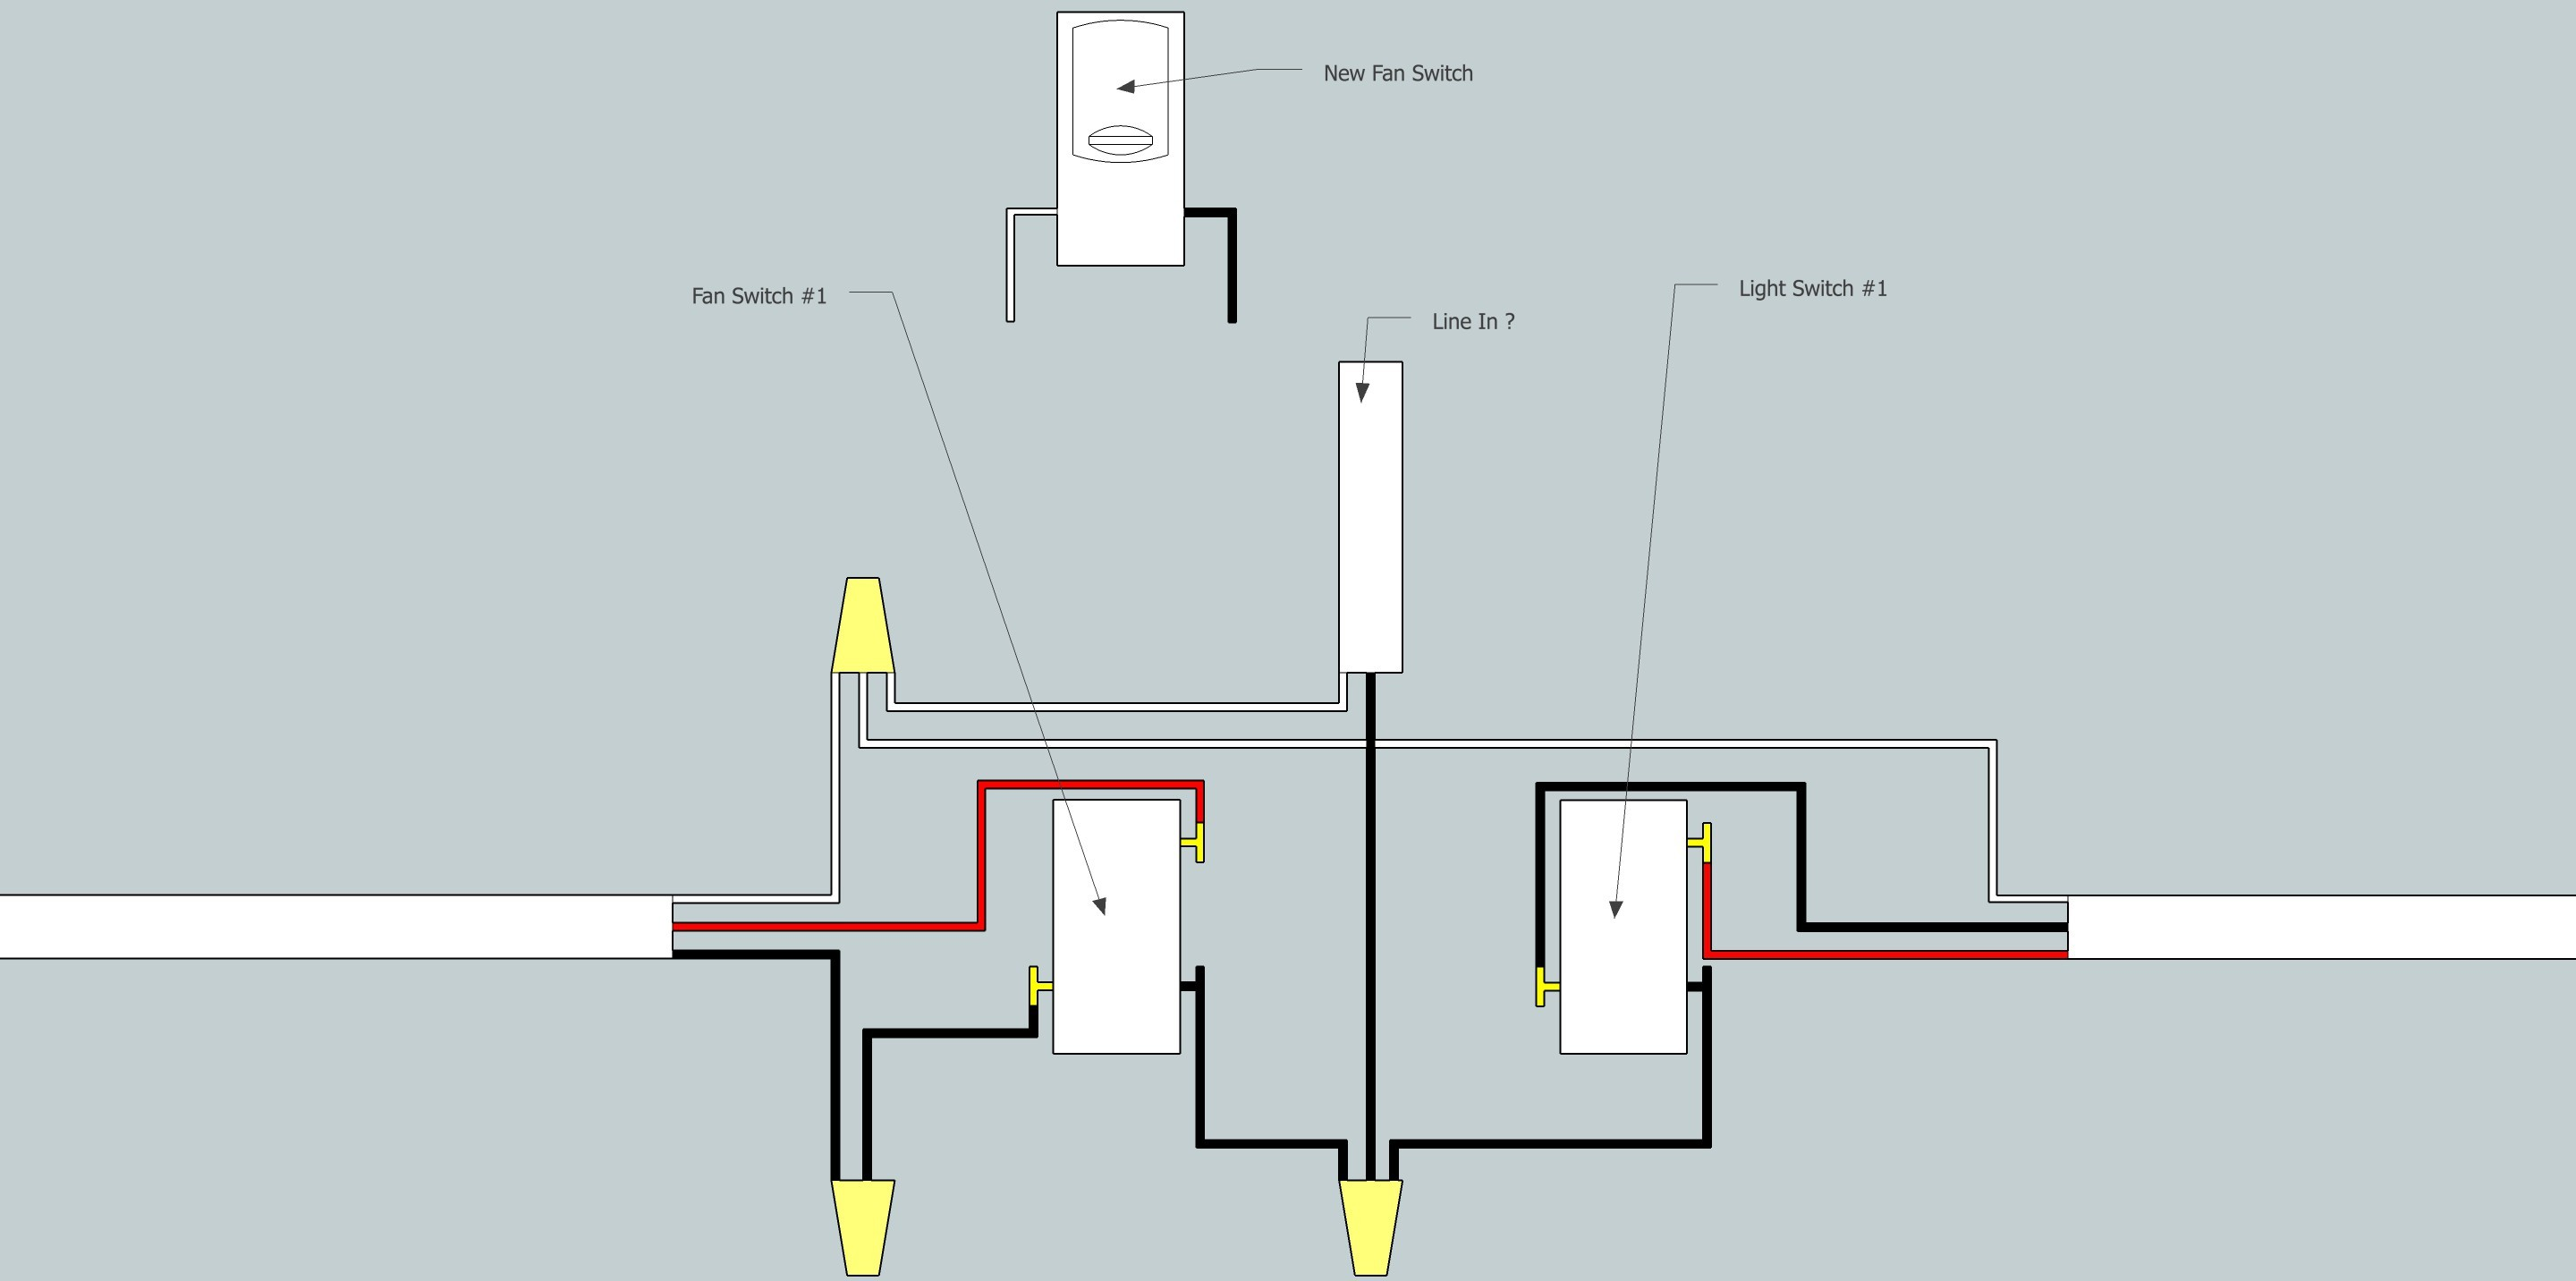 3 Way Wiring Diagram Awesome fortable 3 Way Switch Light In Middle Contemporary Electrical